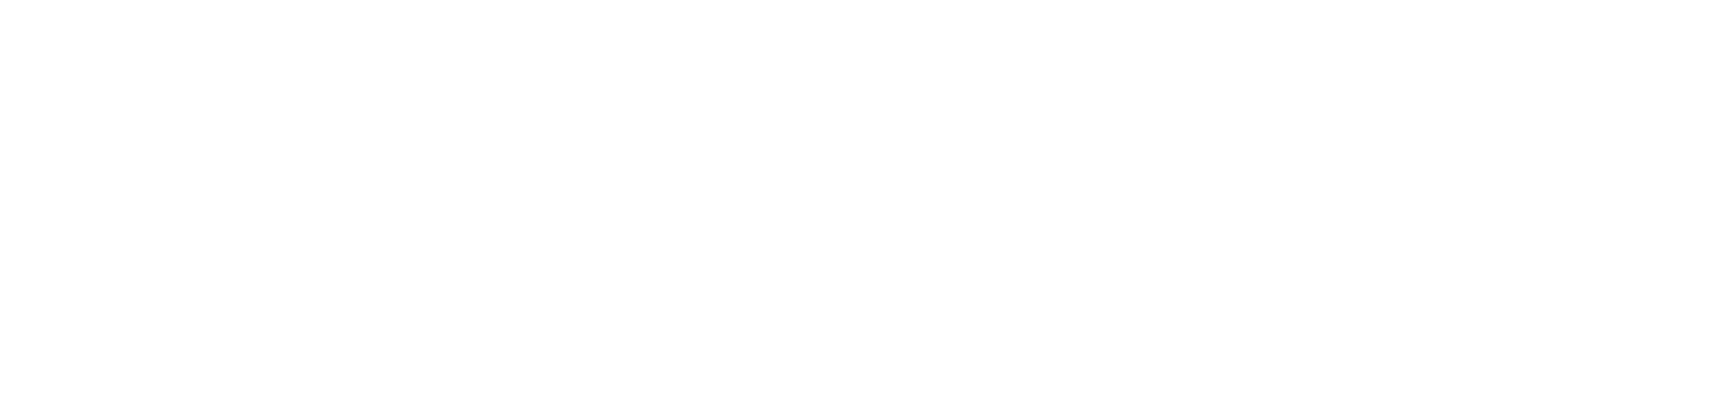 Rocheny Photography & Framing Studio